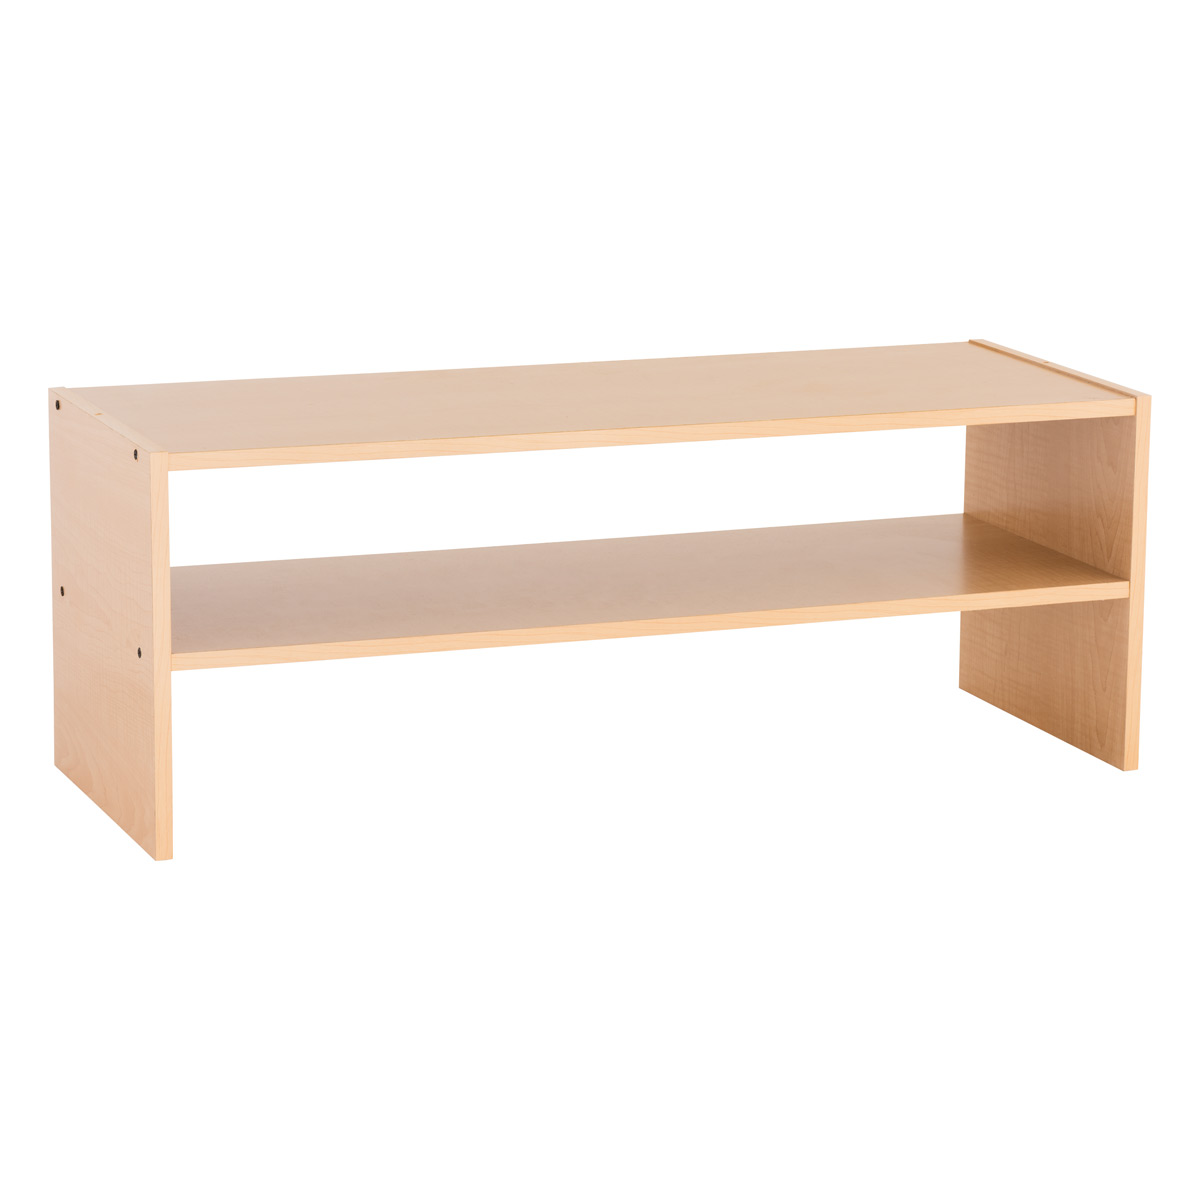 2-Shelf Shoe Stacker